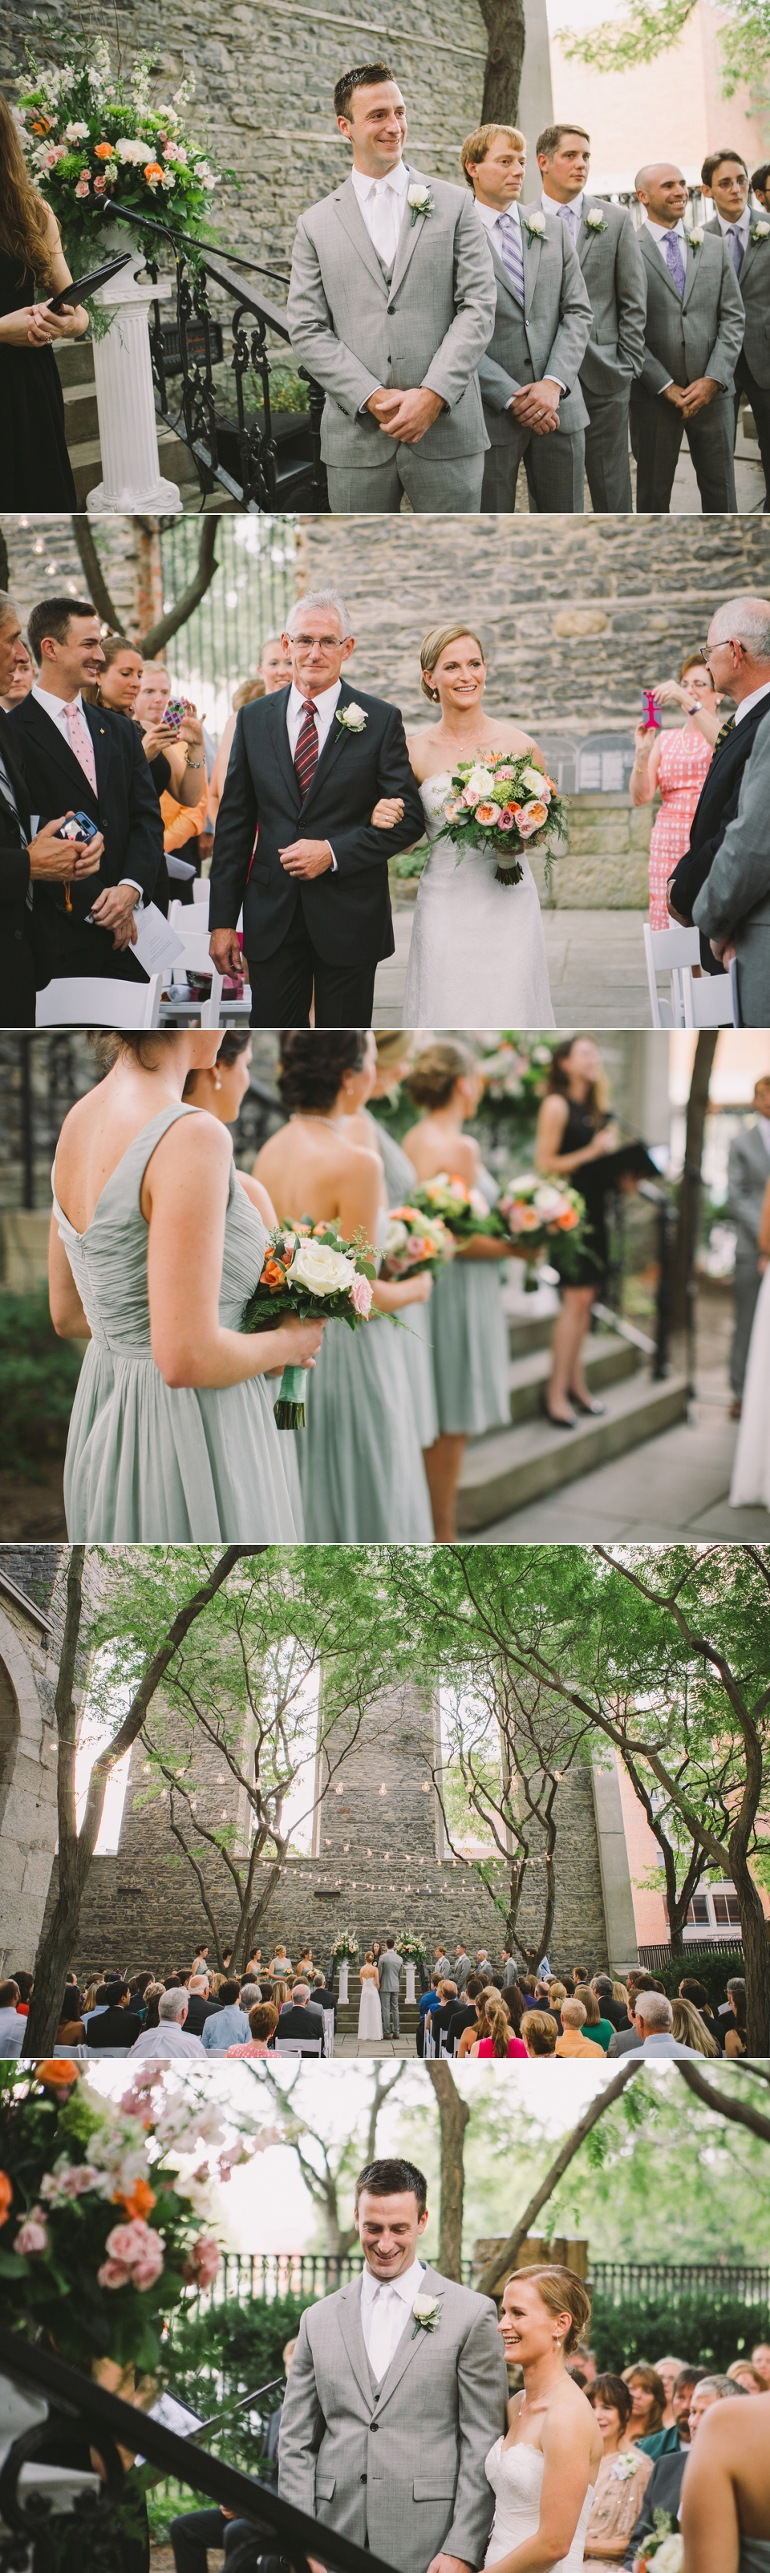 rabbit_room_at_the_lower_mill_wedding_2015_06